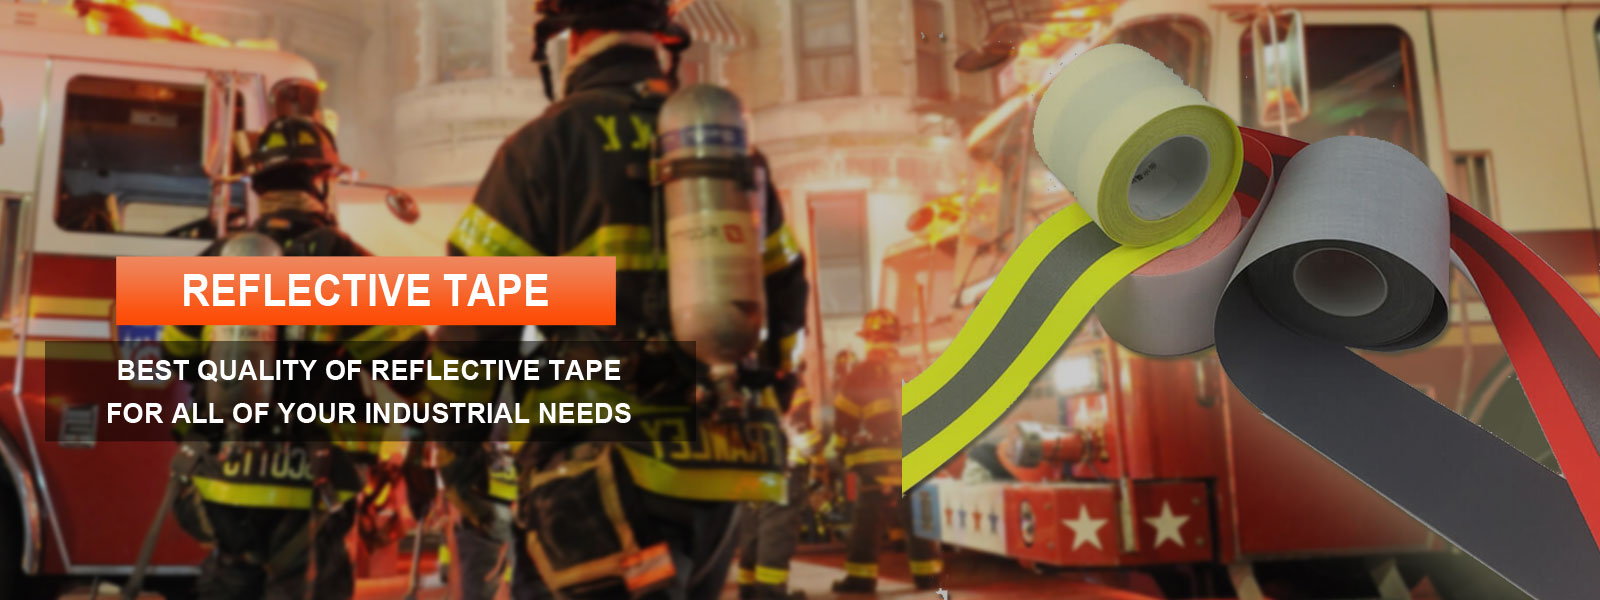 Reflective Tape Manufacturers in Qatar